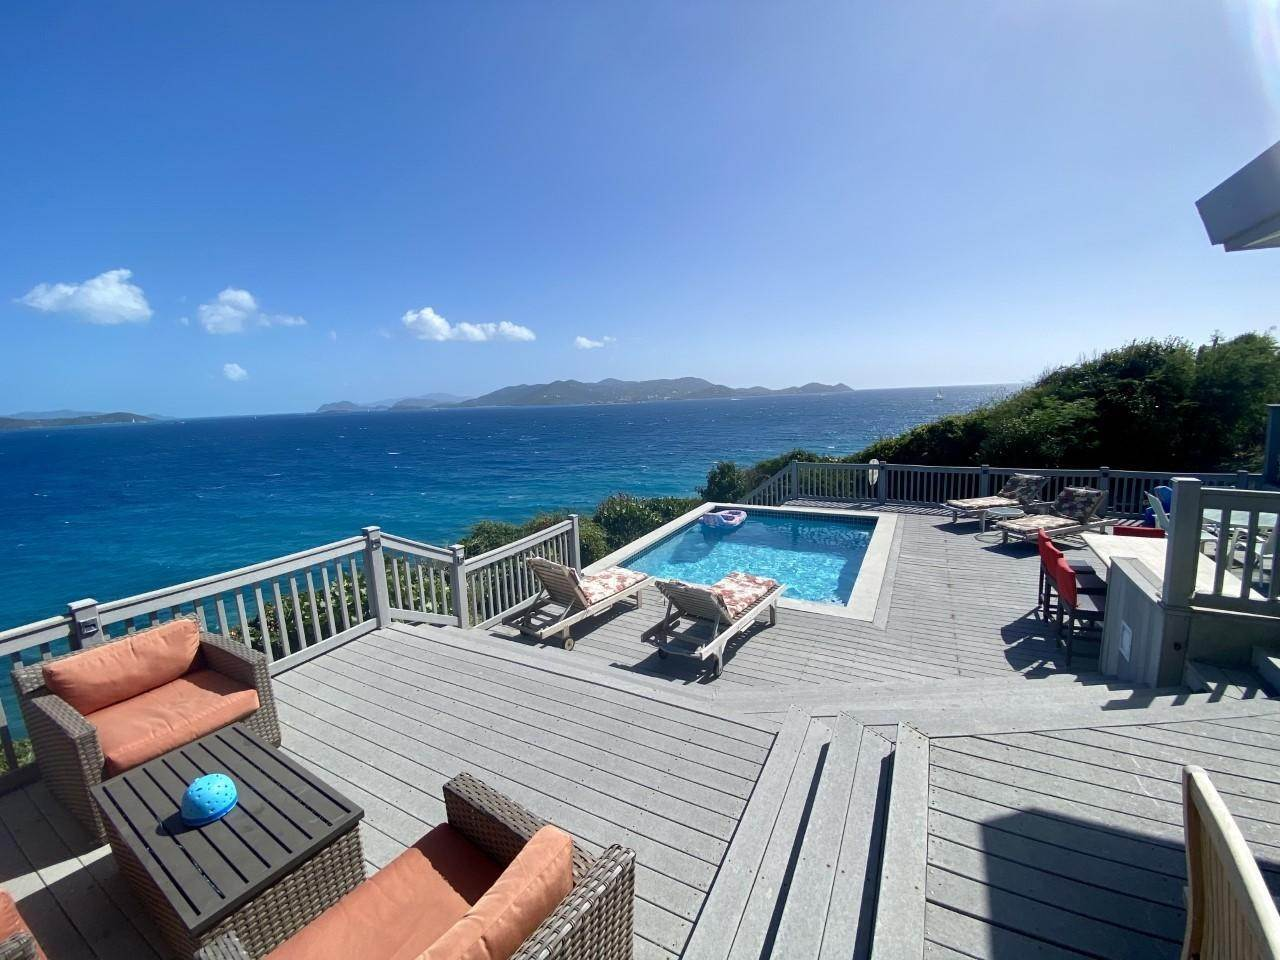 Condominium for Sale at 6A Nazareth RH 00802 6A Nazareth RH Virgin Islands,00802 United States Virgin Islands